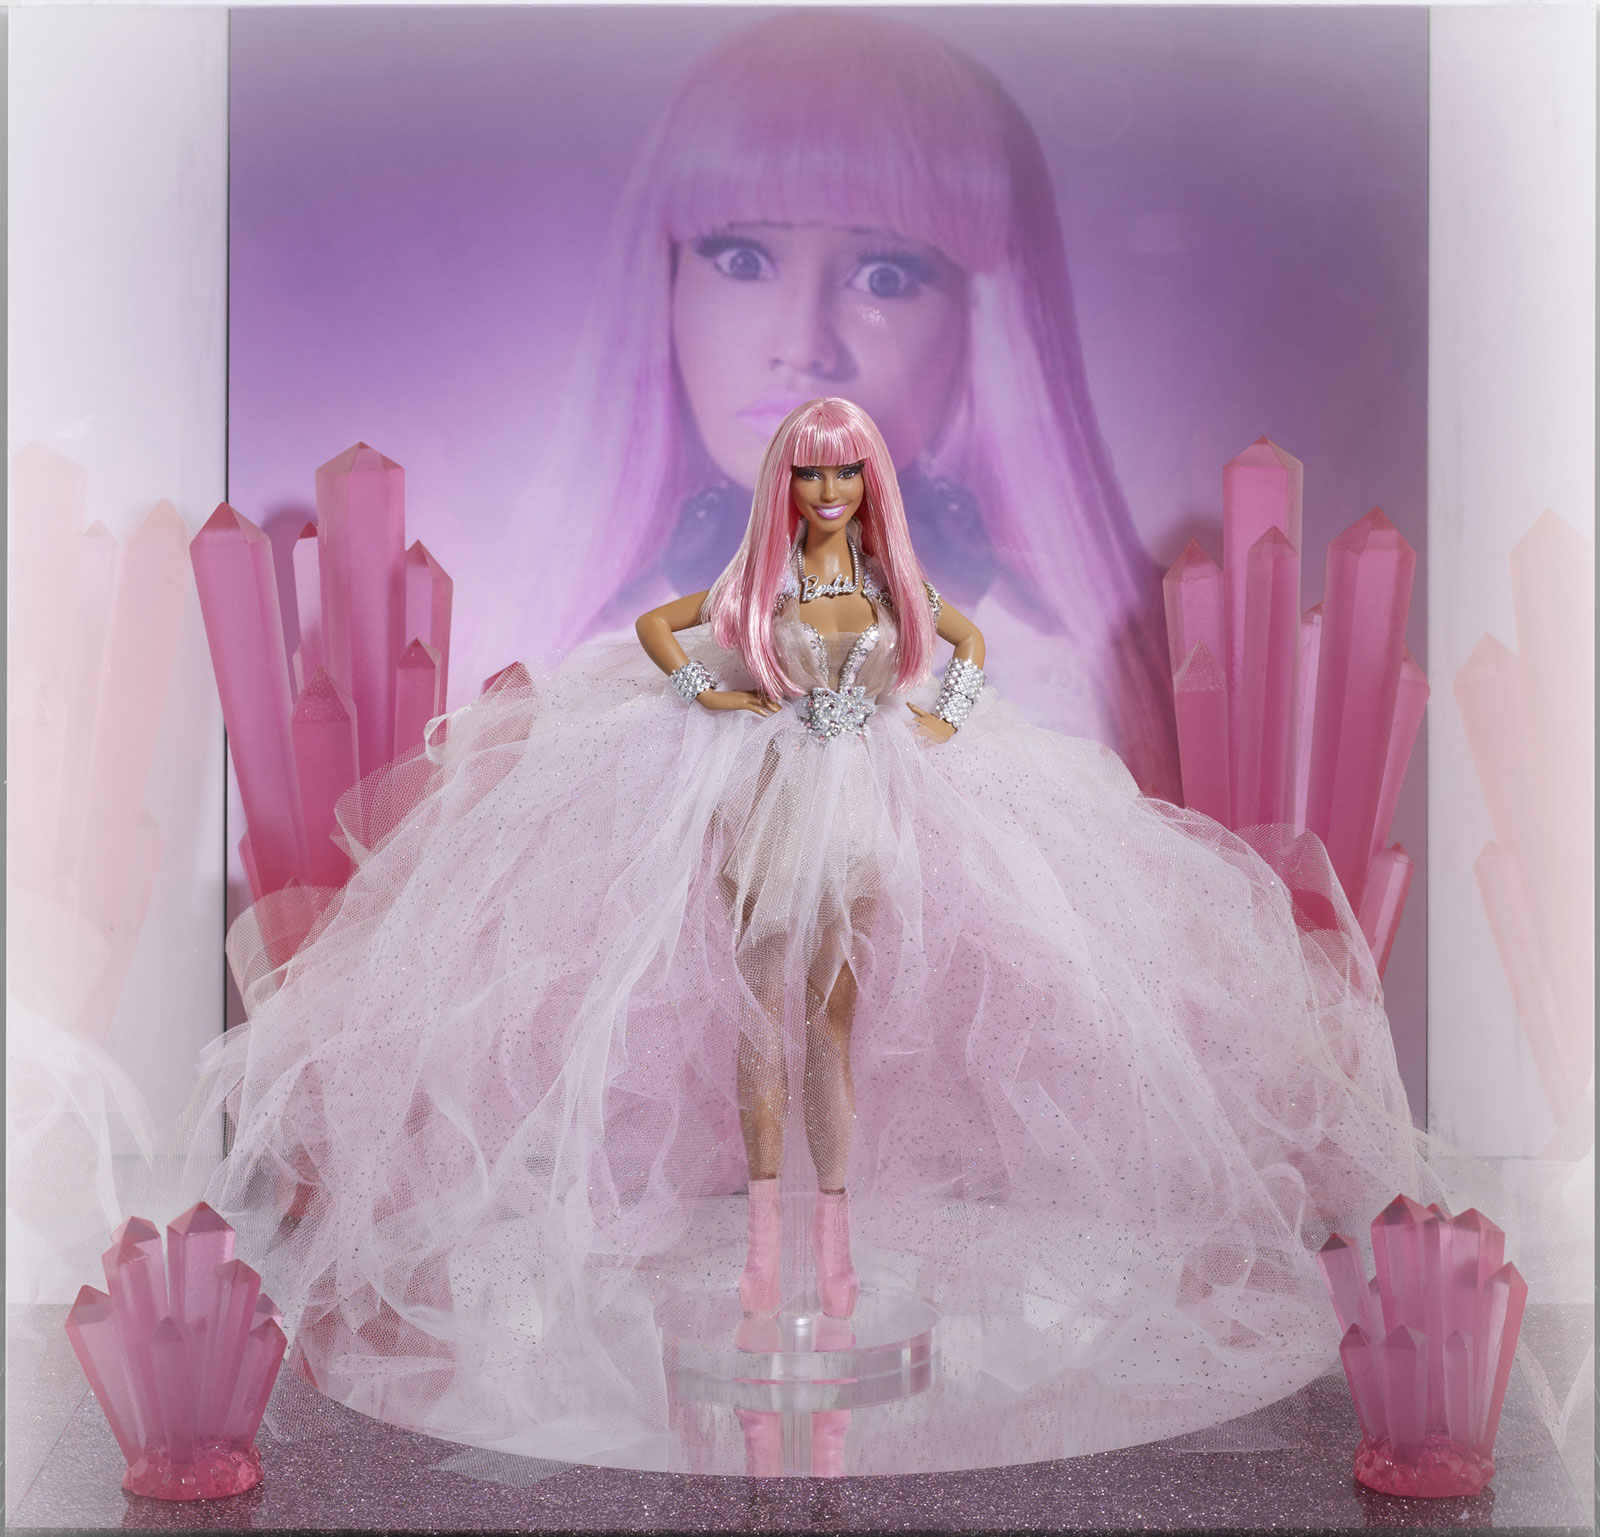 Nicki Minaj and Katy Perry Barbie Doll Goes Under the Hammer for Charity - eXtravaganzi